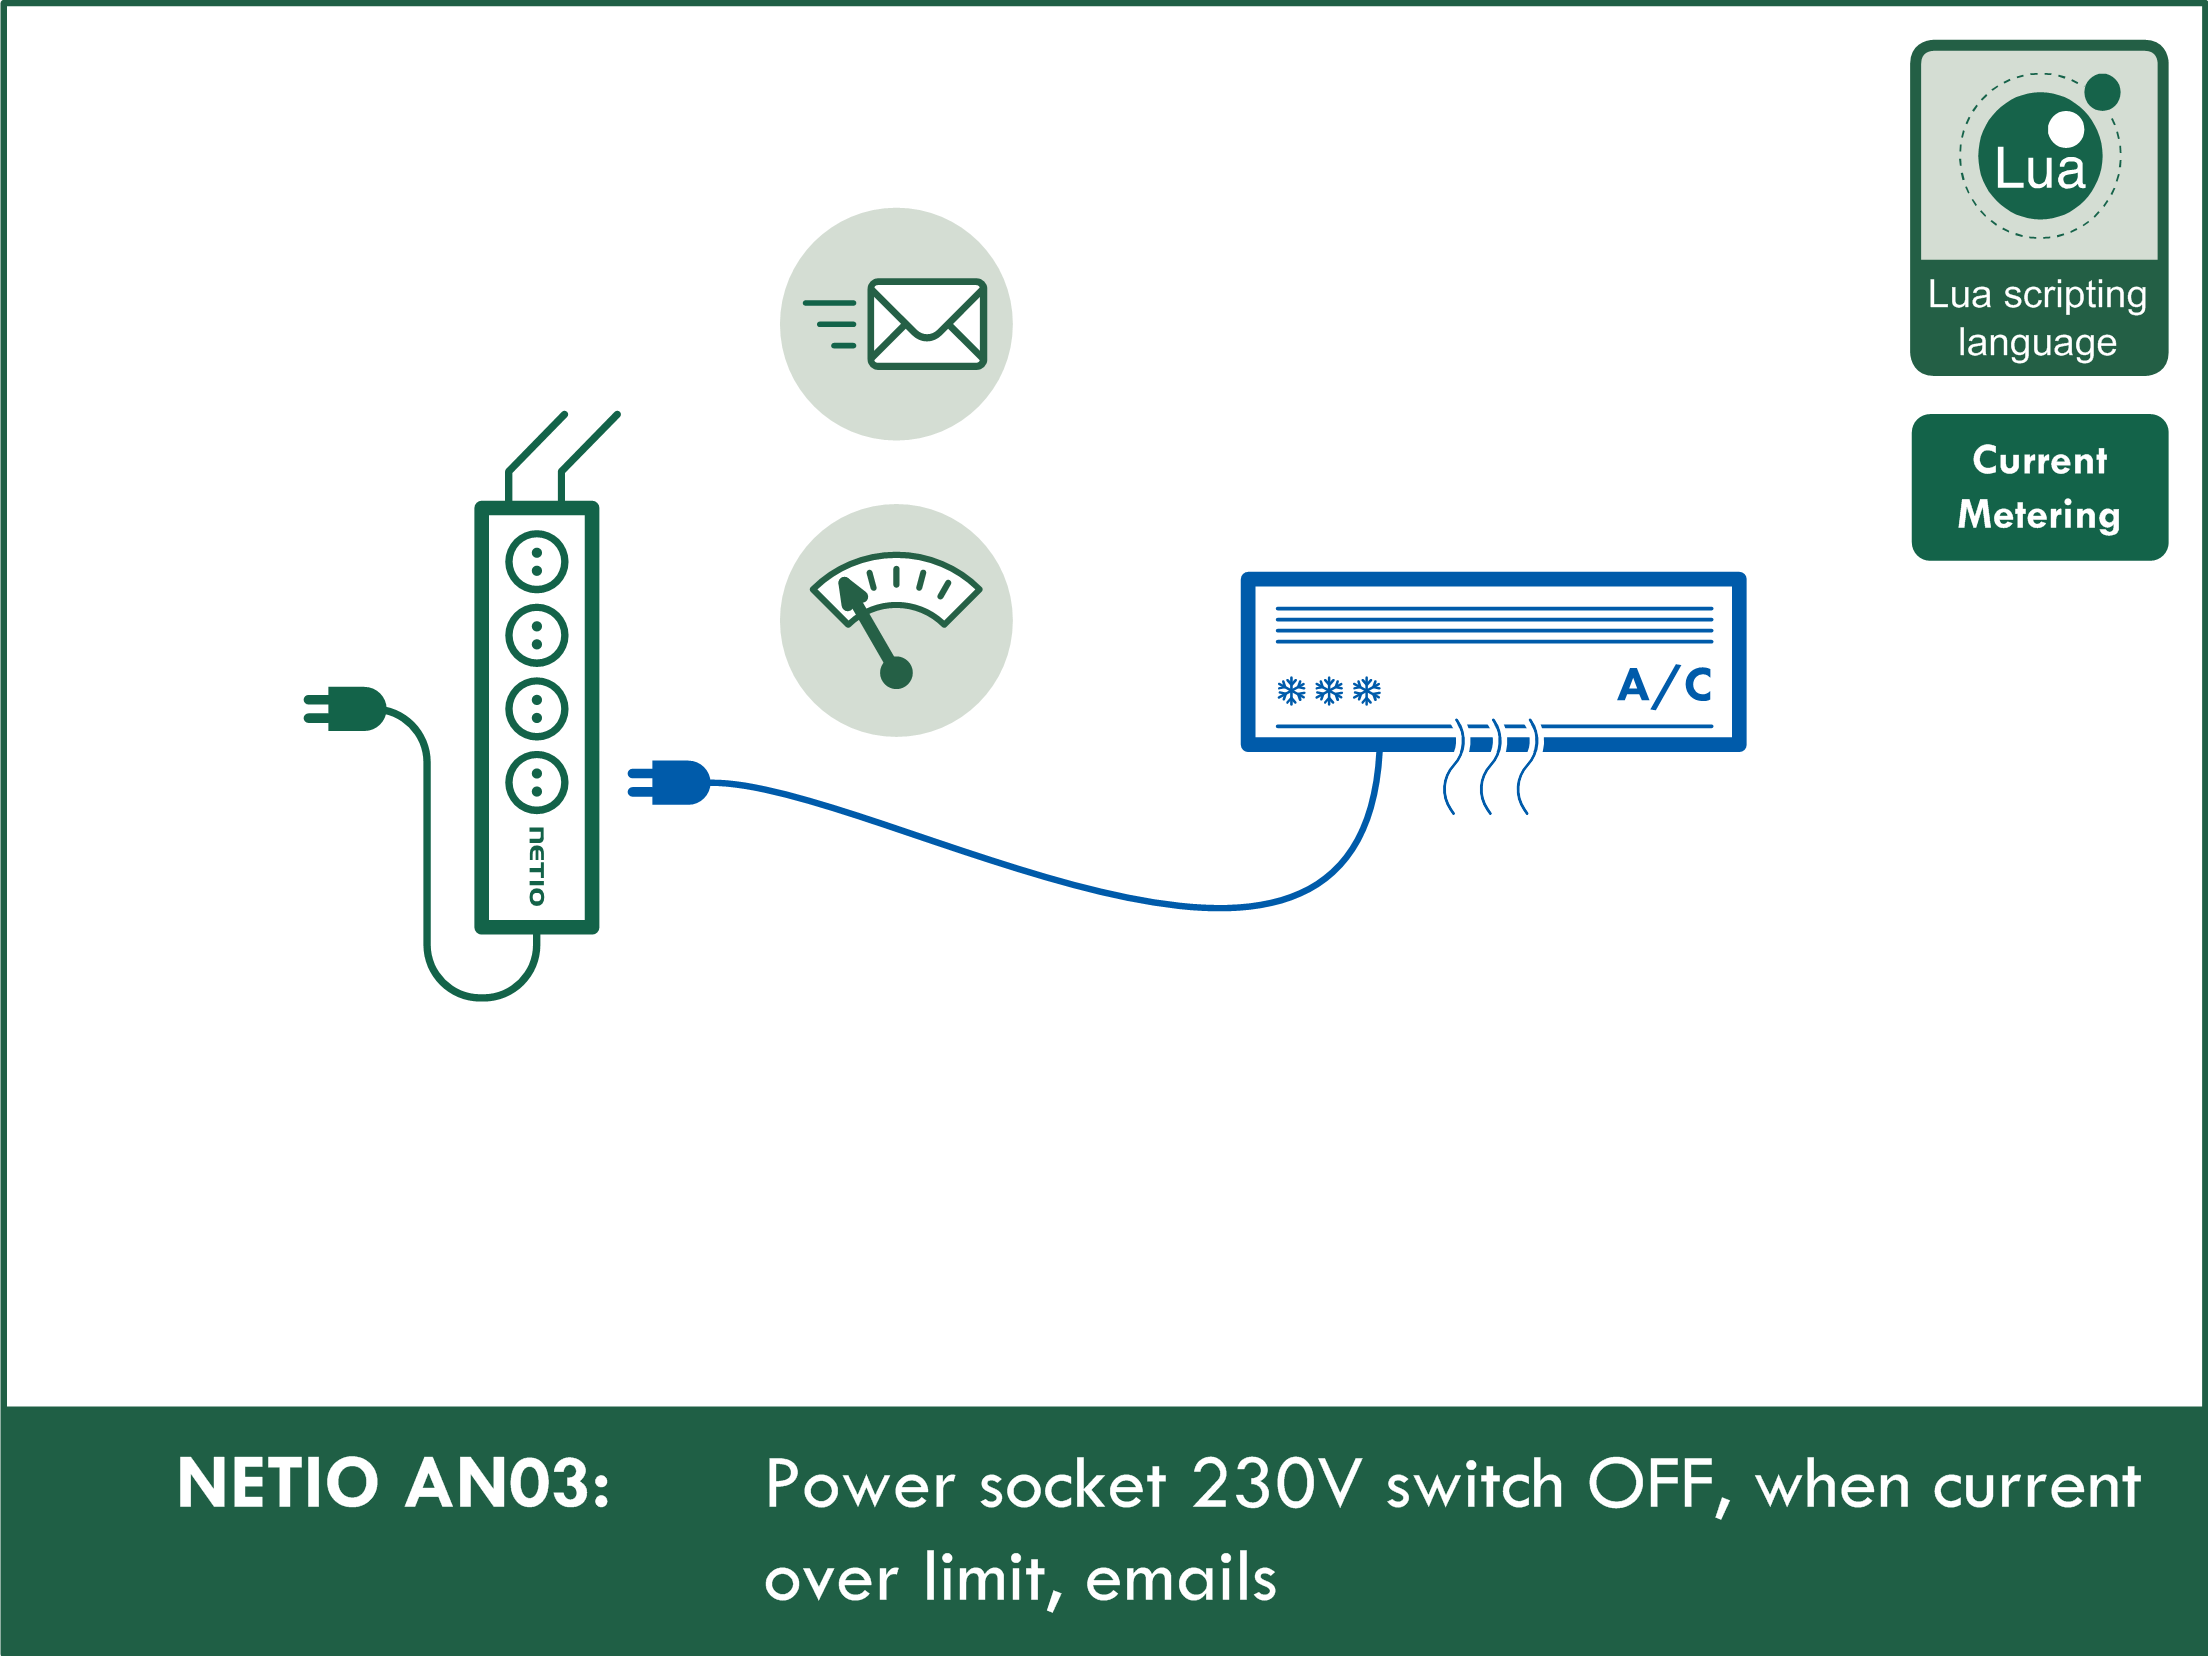 NETIO AN03 Switching OFF a 230V power socket when current exceeds limit, email alerts